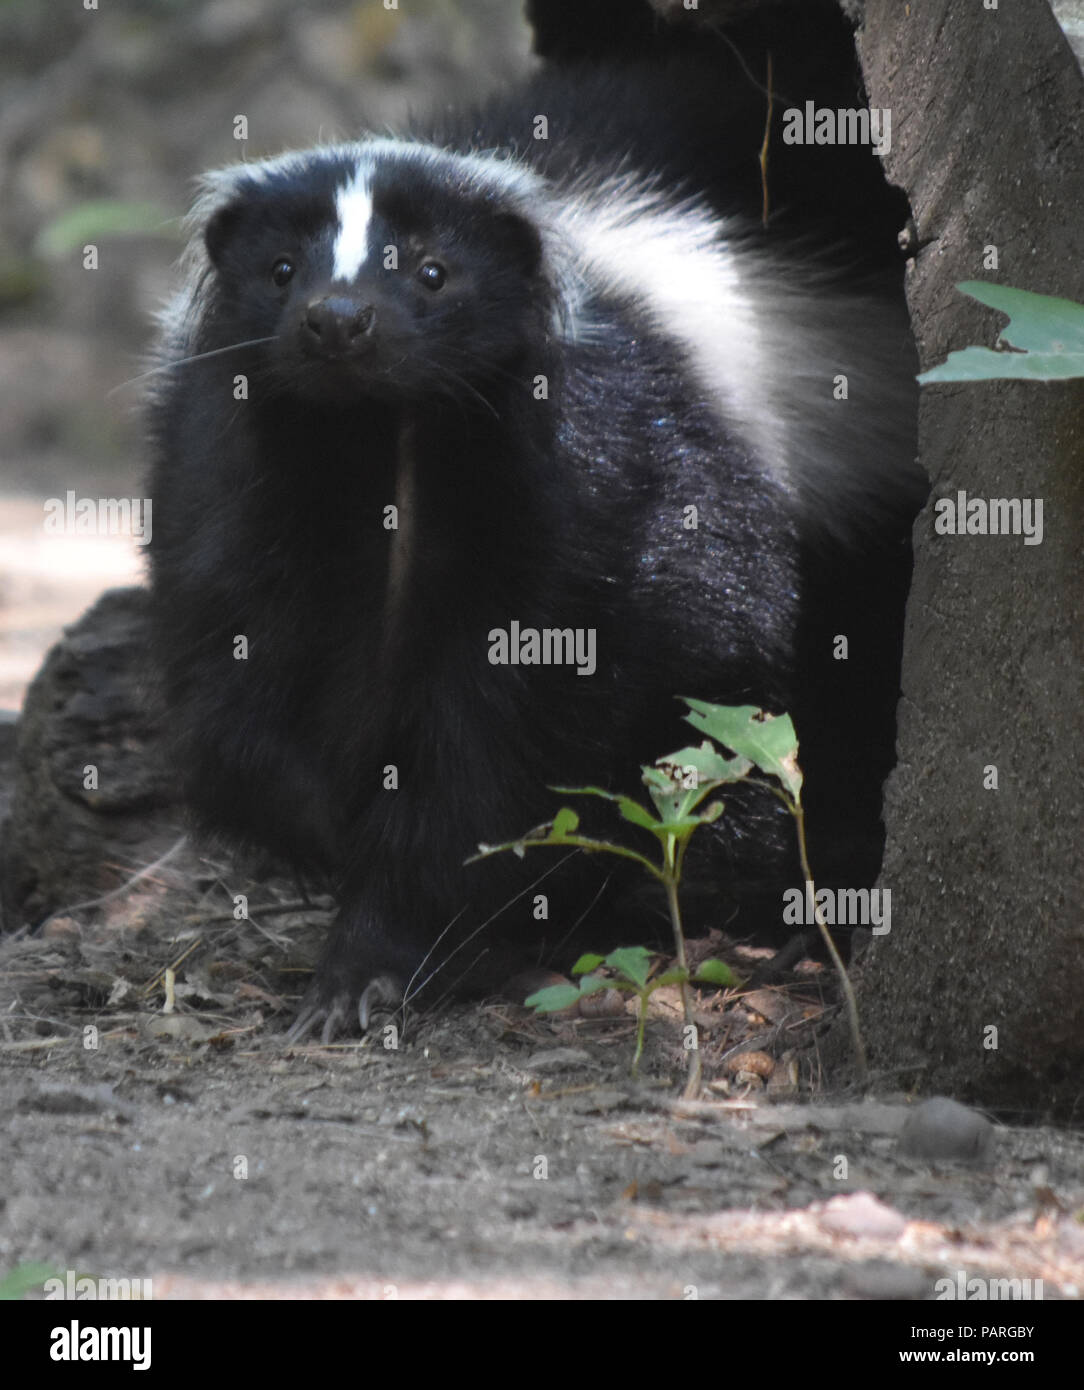 Skunk With A Cute Face And Lots Of Fluffy Fur Stock Photo 213188751